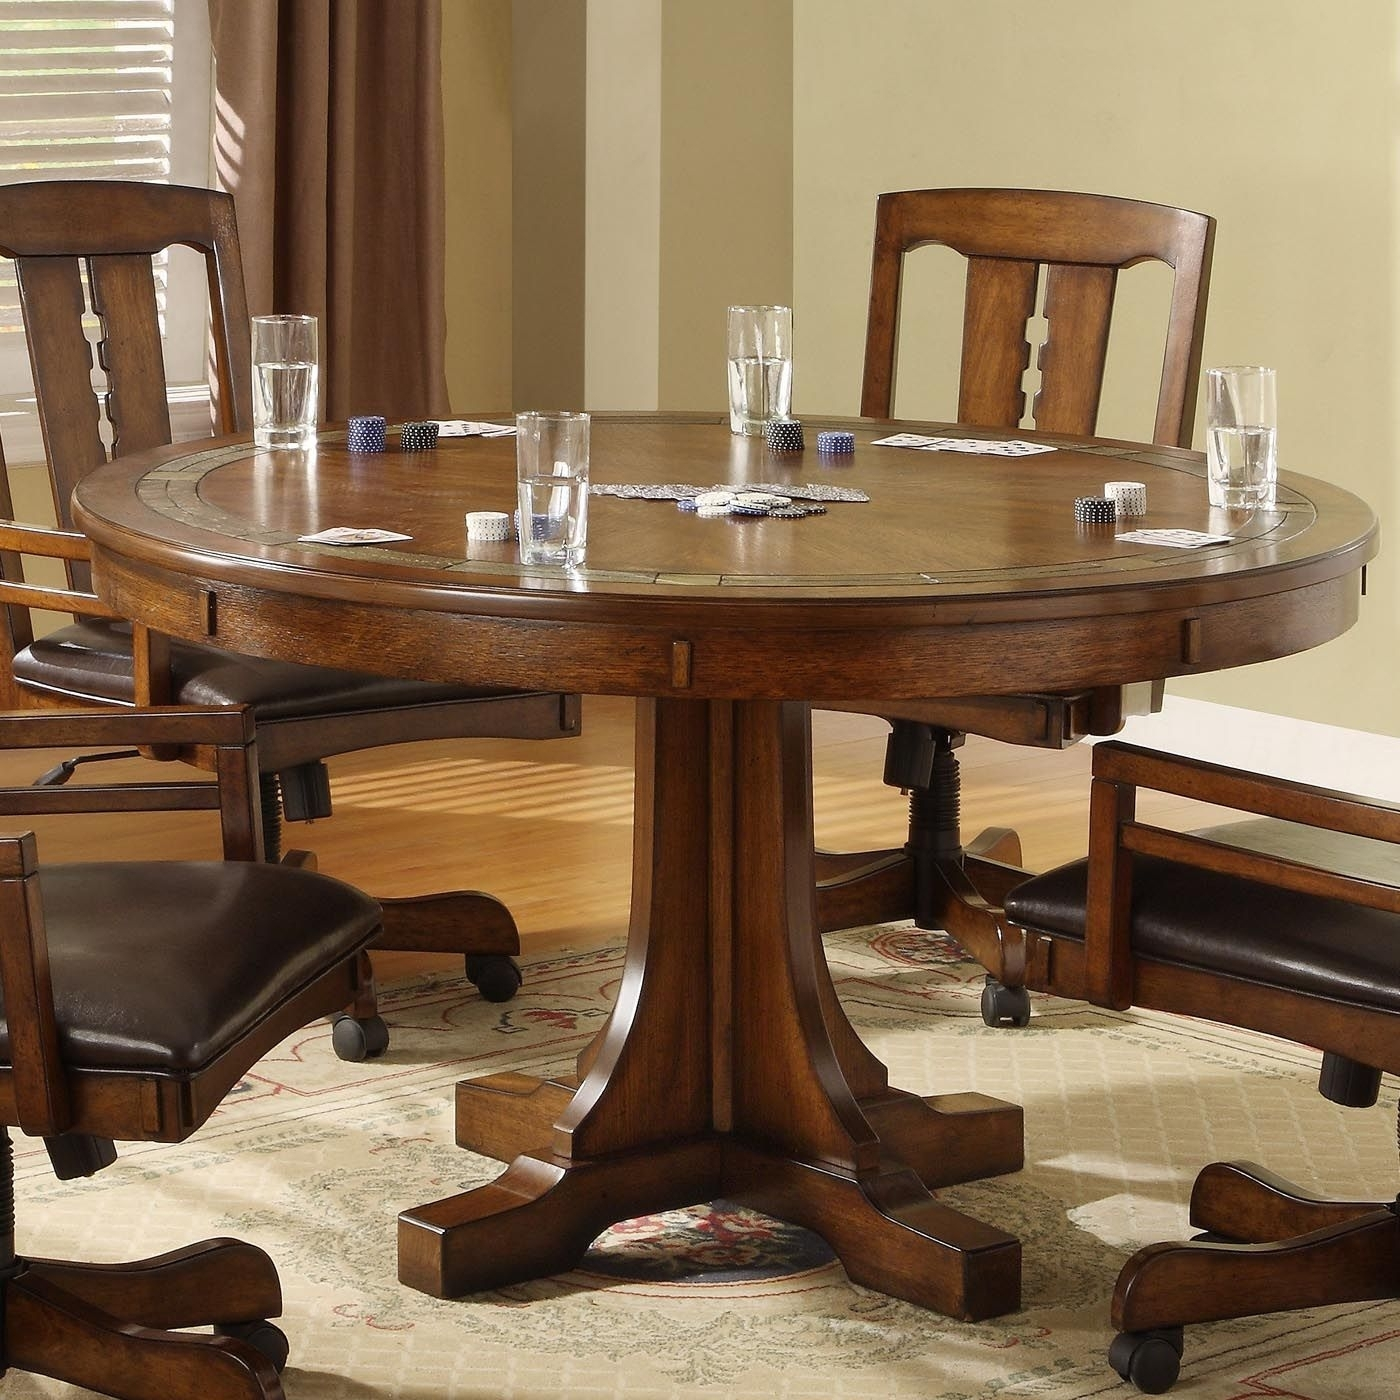 Craftsman Furniture | Riverside Furniture 295 Craftsman Home Convert Regarding Current Craftsman Round Dining Tables (Image 3 of 20)